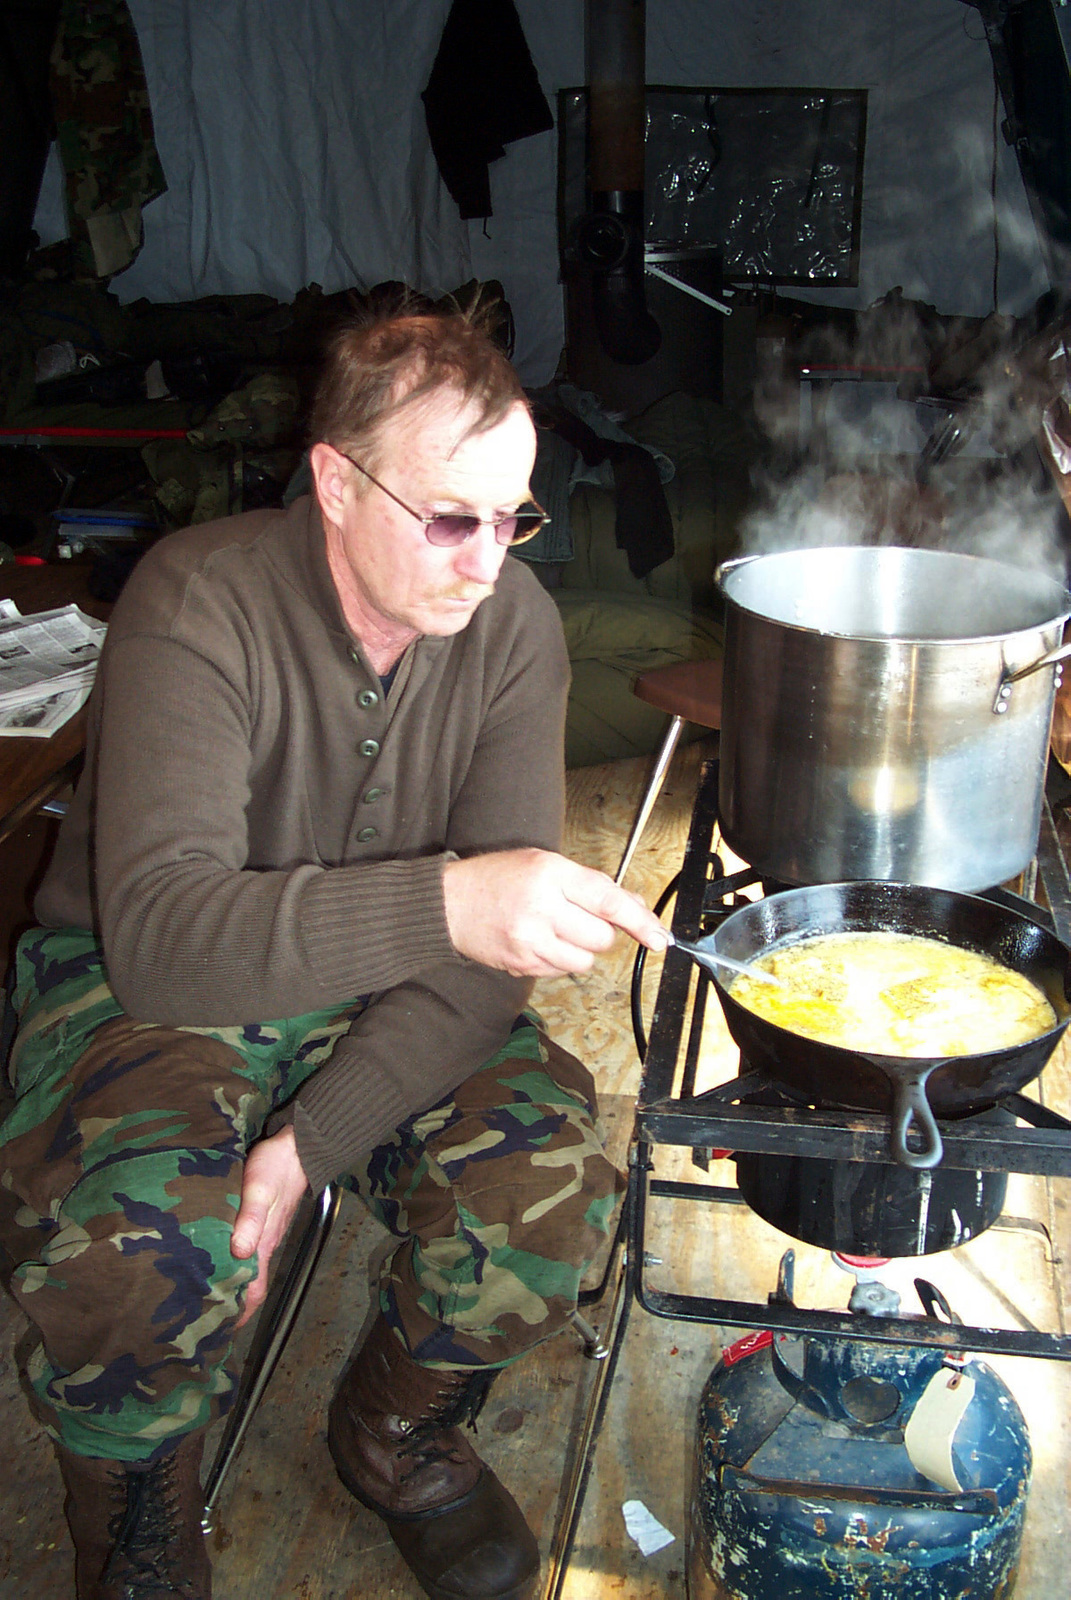 US Air Force (USAF) Technical Sergeant (TSGT) Everett Erickson, 148th Fighter Wing (FW), Minnesota Air National Guard (ANG), uses a field stove to prepare breakfast at the Pike Lake Crossing remote communication base. TSGT Erickson is one of the checkpoint volunteers, from the Minnesota ANG, for the annual 400-mile John Beargrease Sled Dog Marathon held along the north shore of Lake Superior, Minnesota (MN)